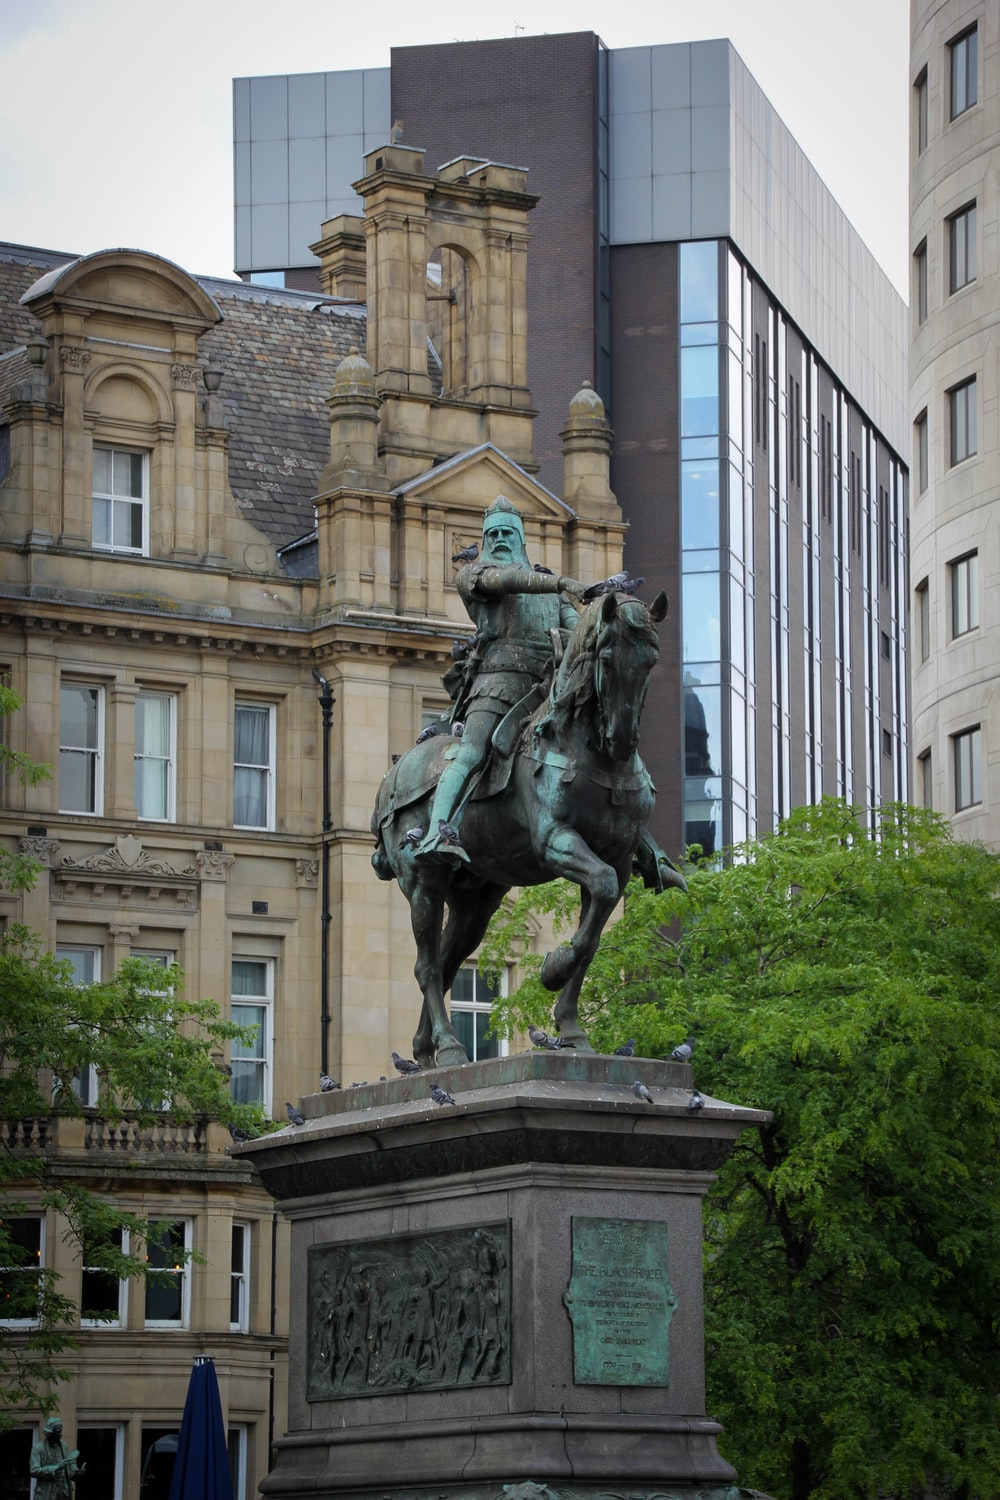 man riding horse statue near brown concrete building during daytime